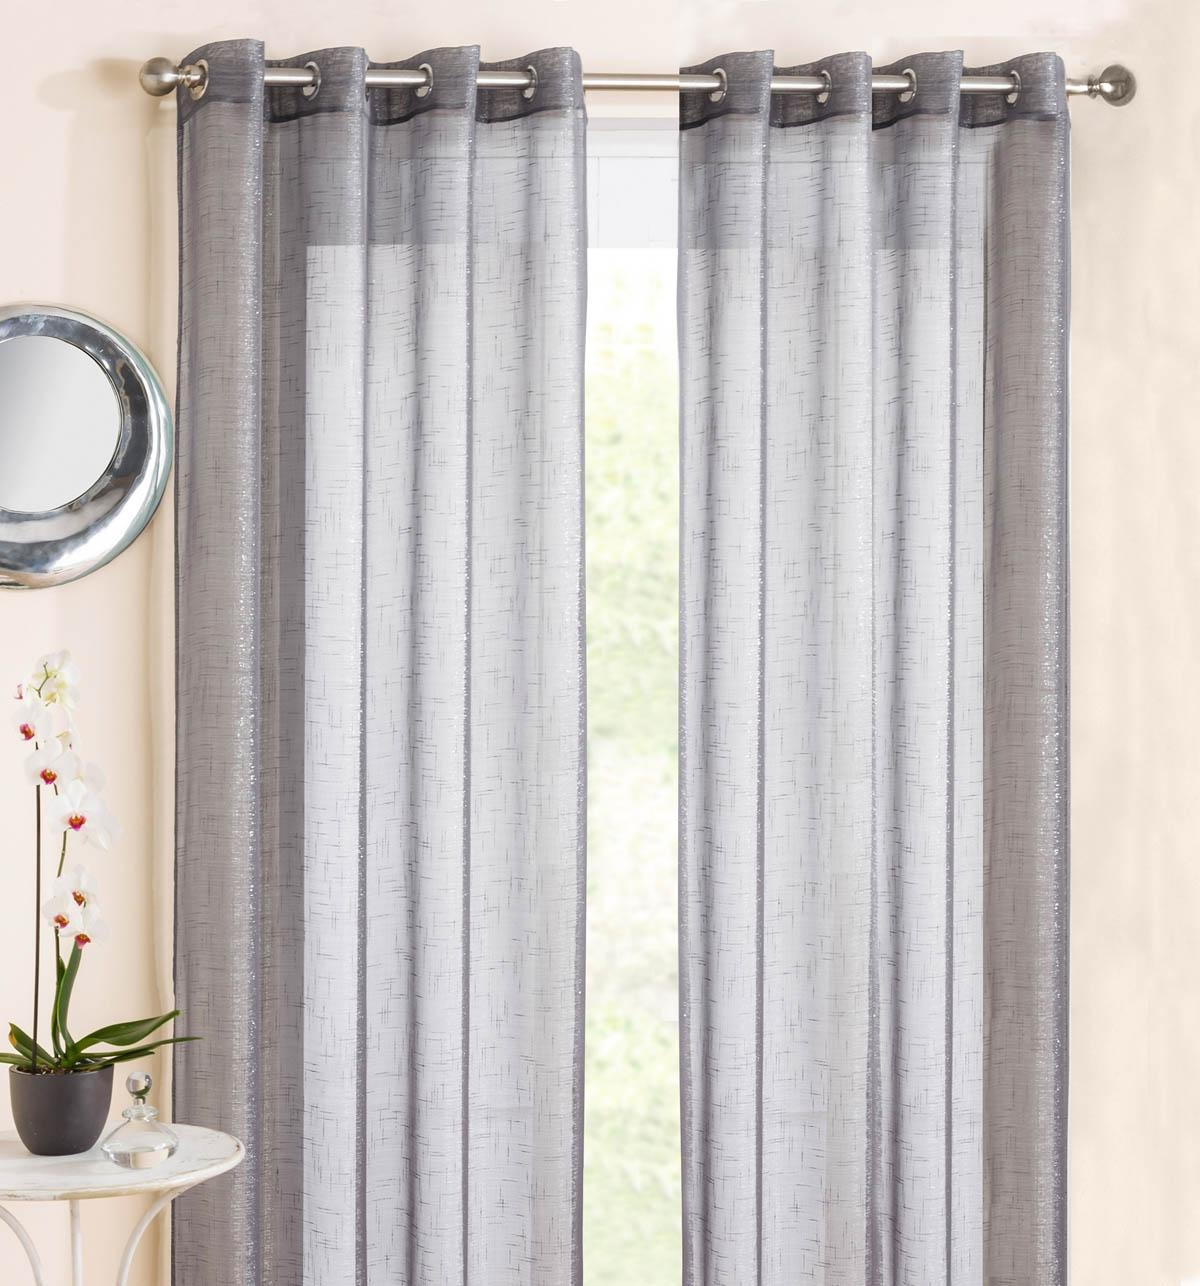 Grey Curtains Modern Curtains Terrys Fabrics With Regard To Grey Eyelet Curtains (Image 11 of 25)